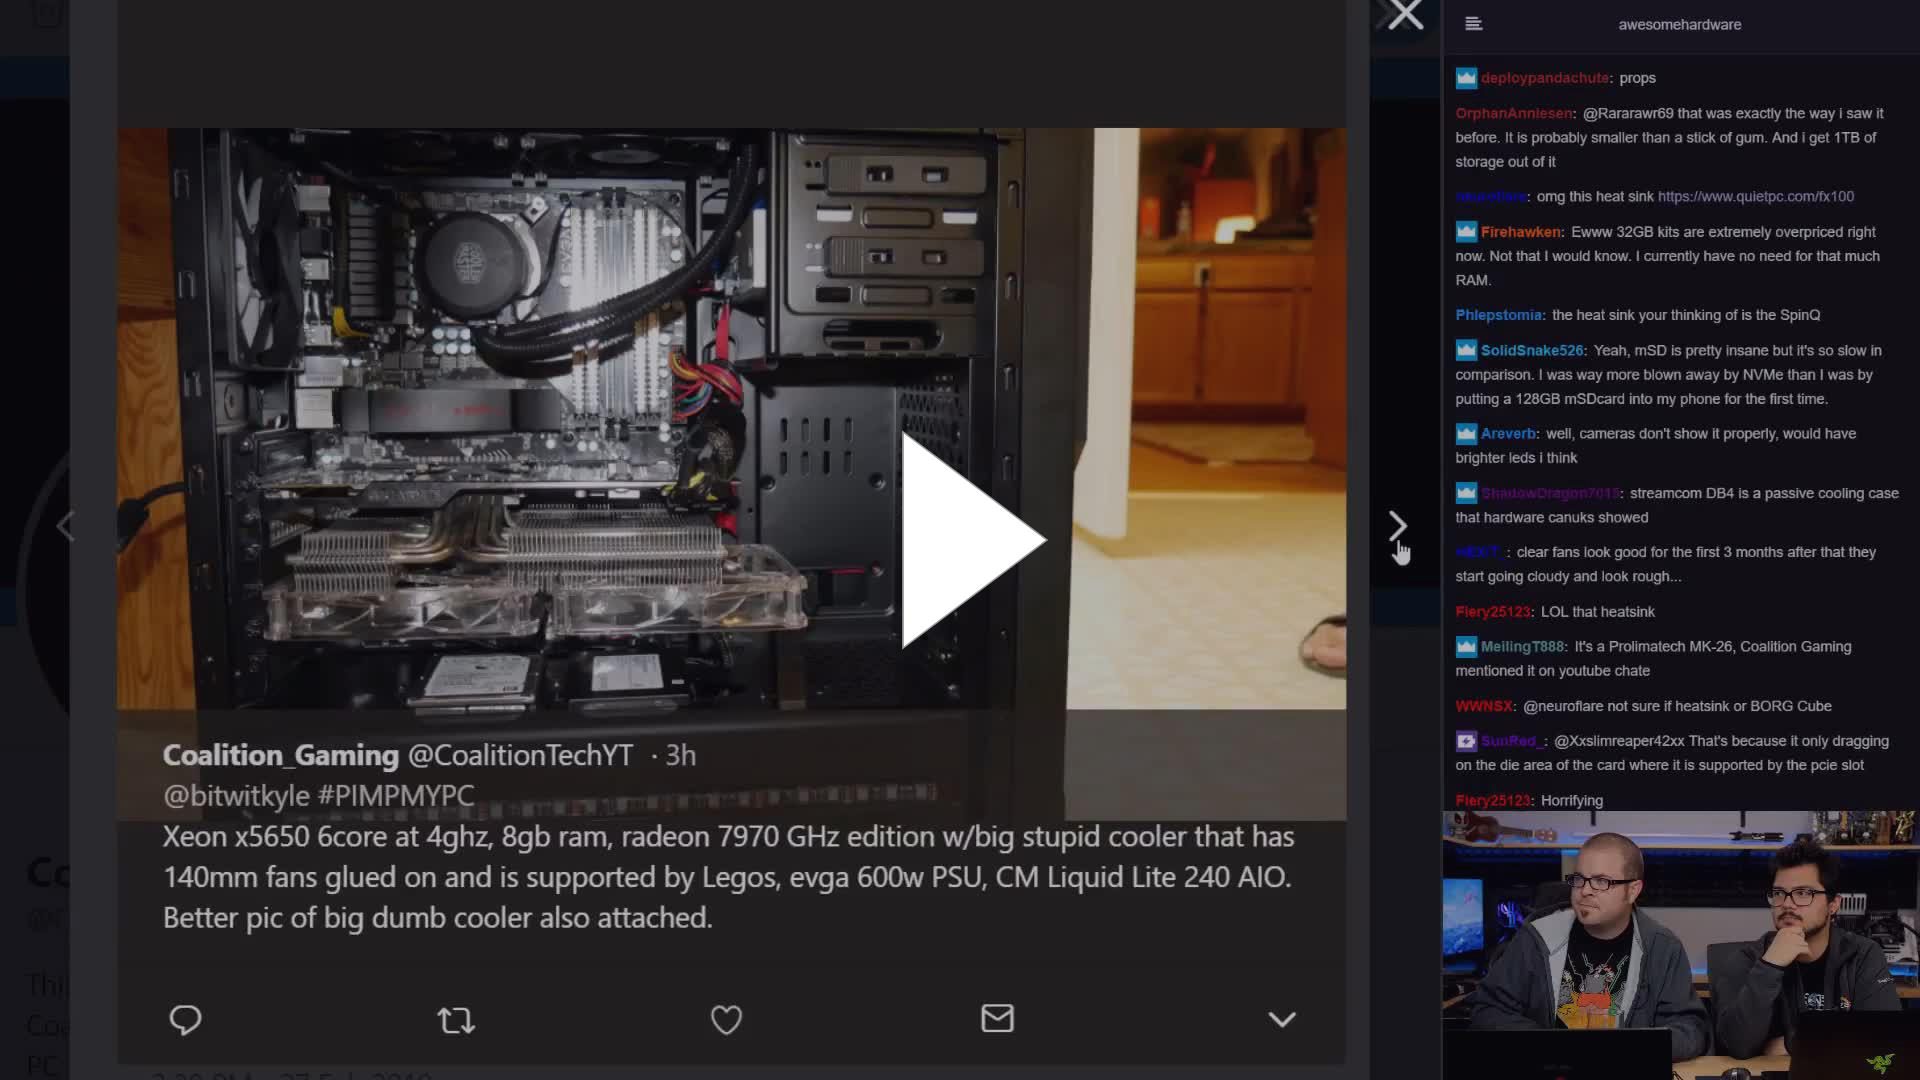 Coalition Gaming $300 Xeon build Clip 3 for #PimpMyPC - Twitch